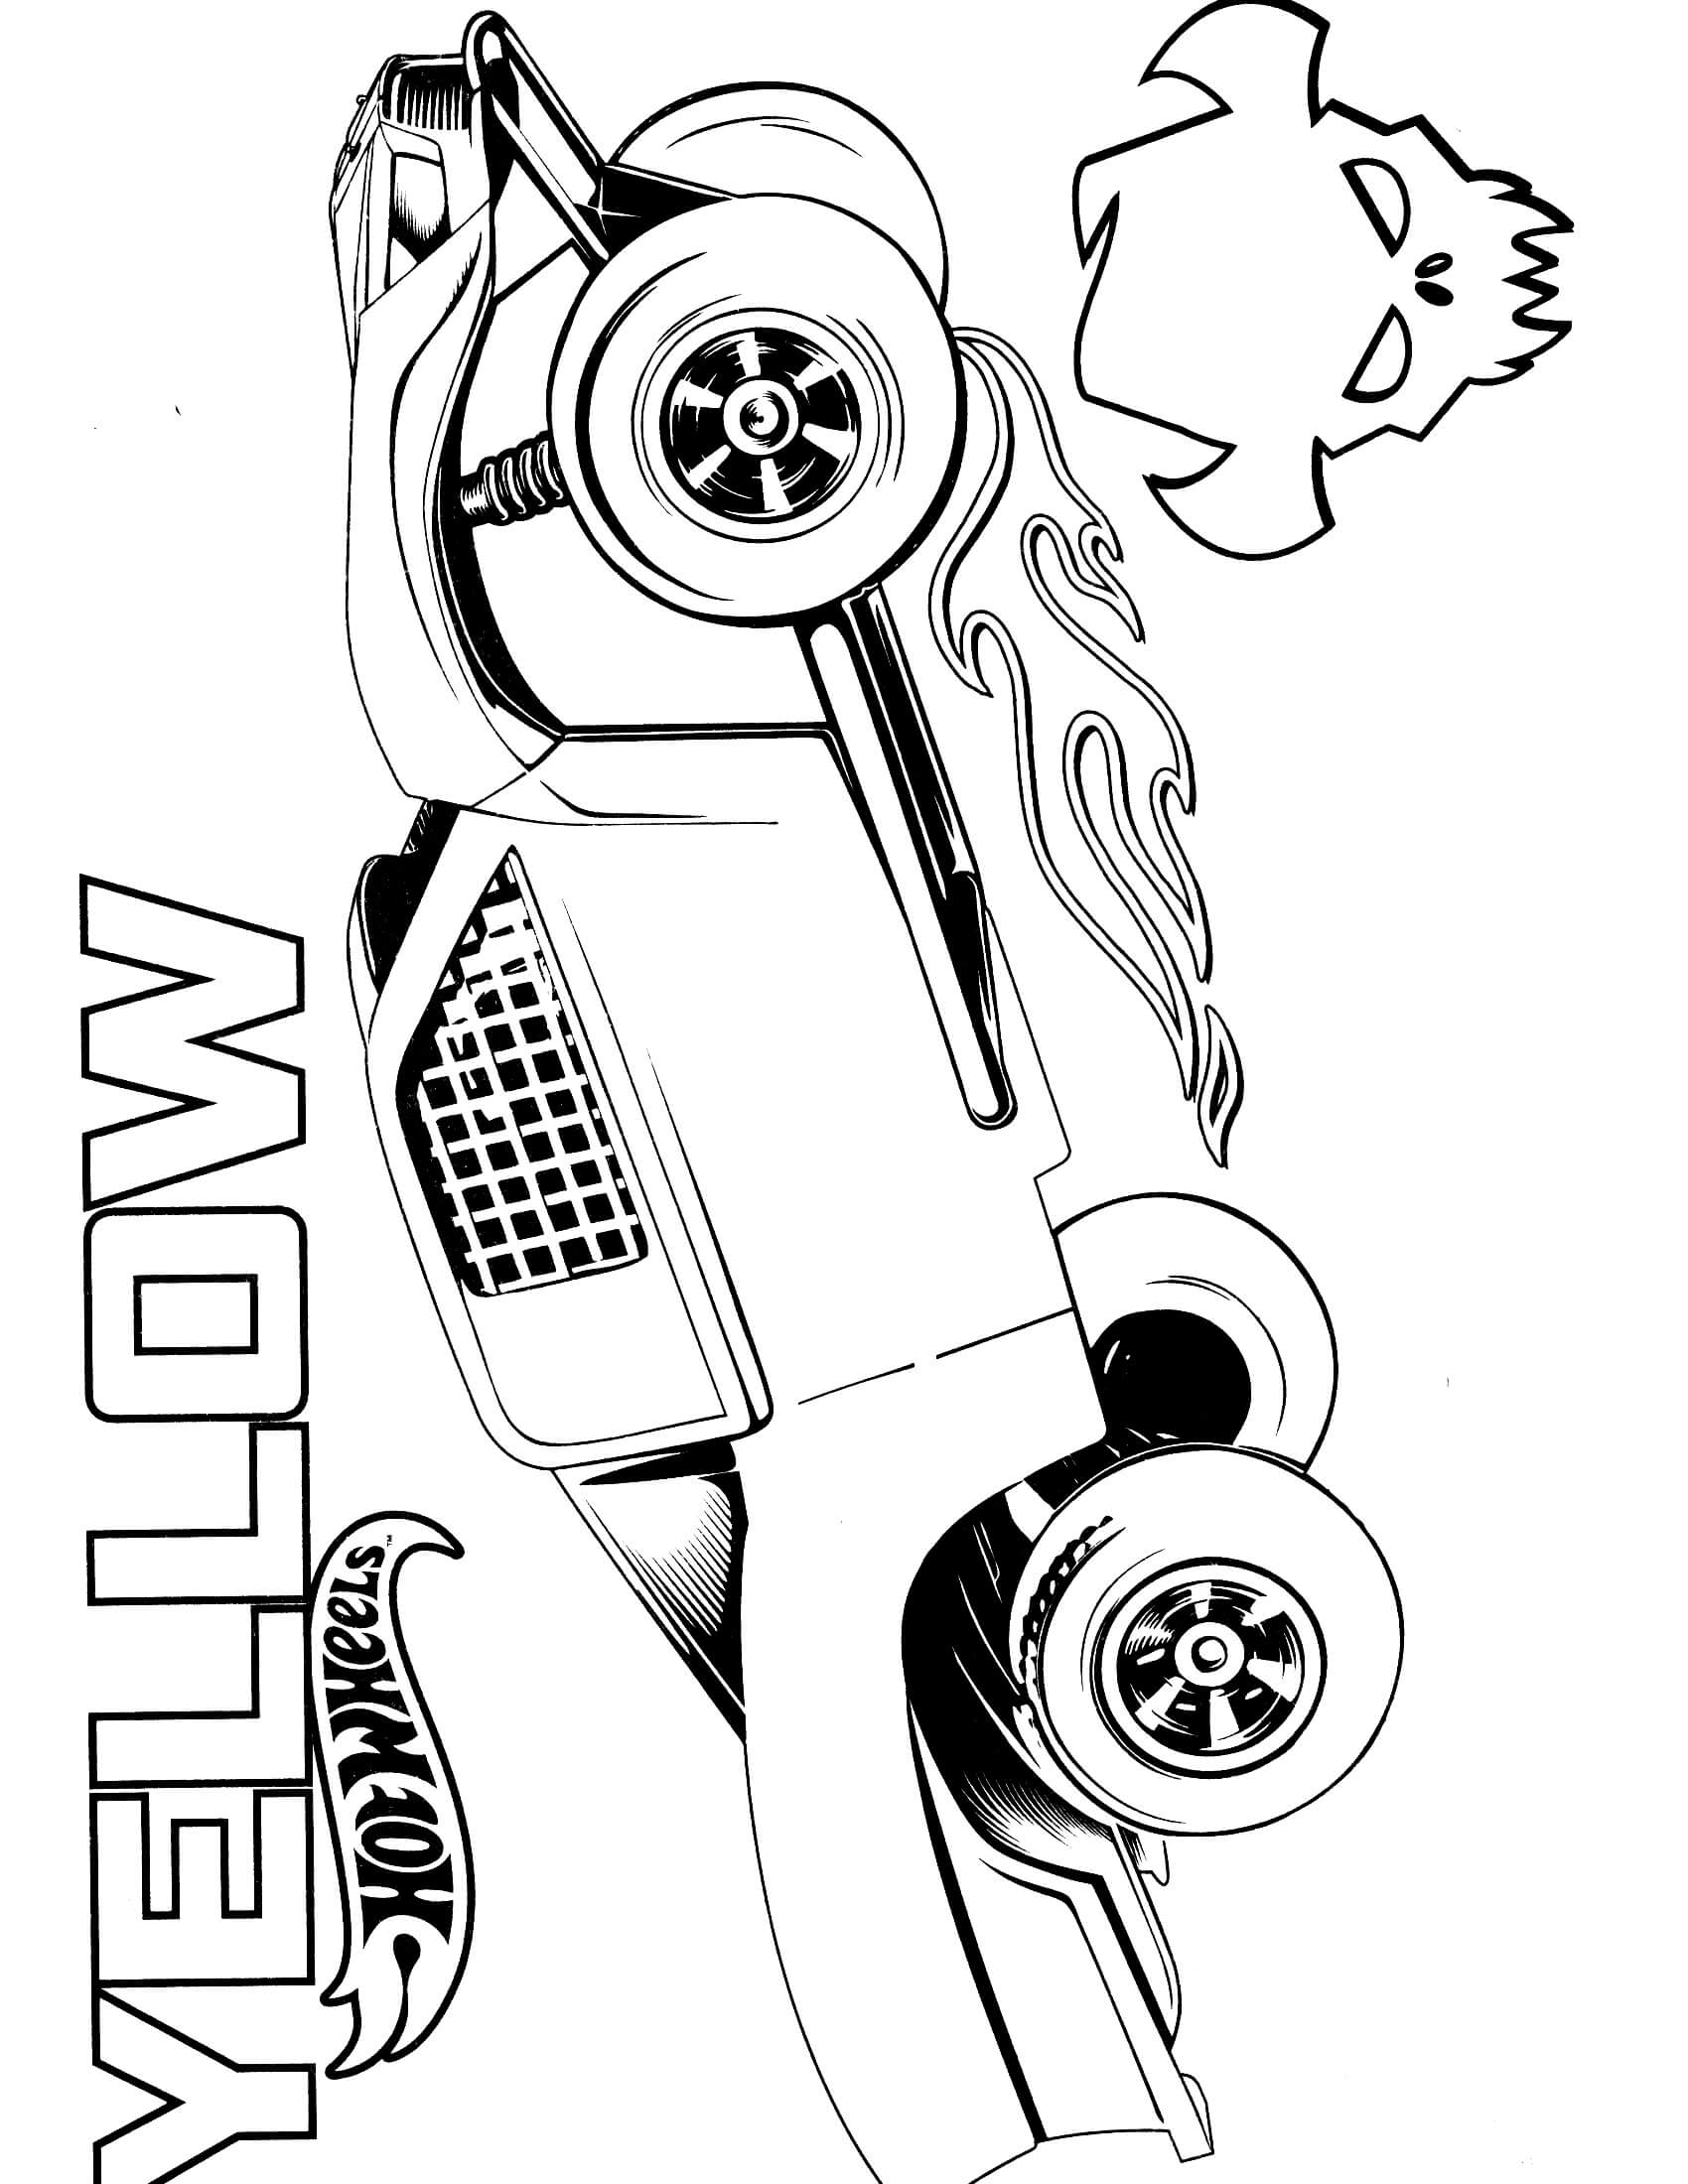 hotwheels coloring pages hot wheels 61 coloringcolorcom coloring hotwheels pages